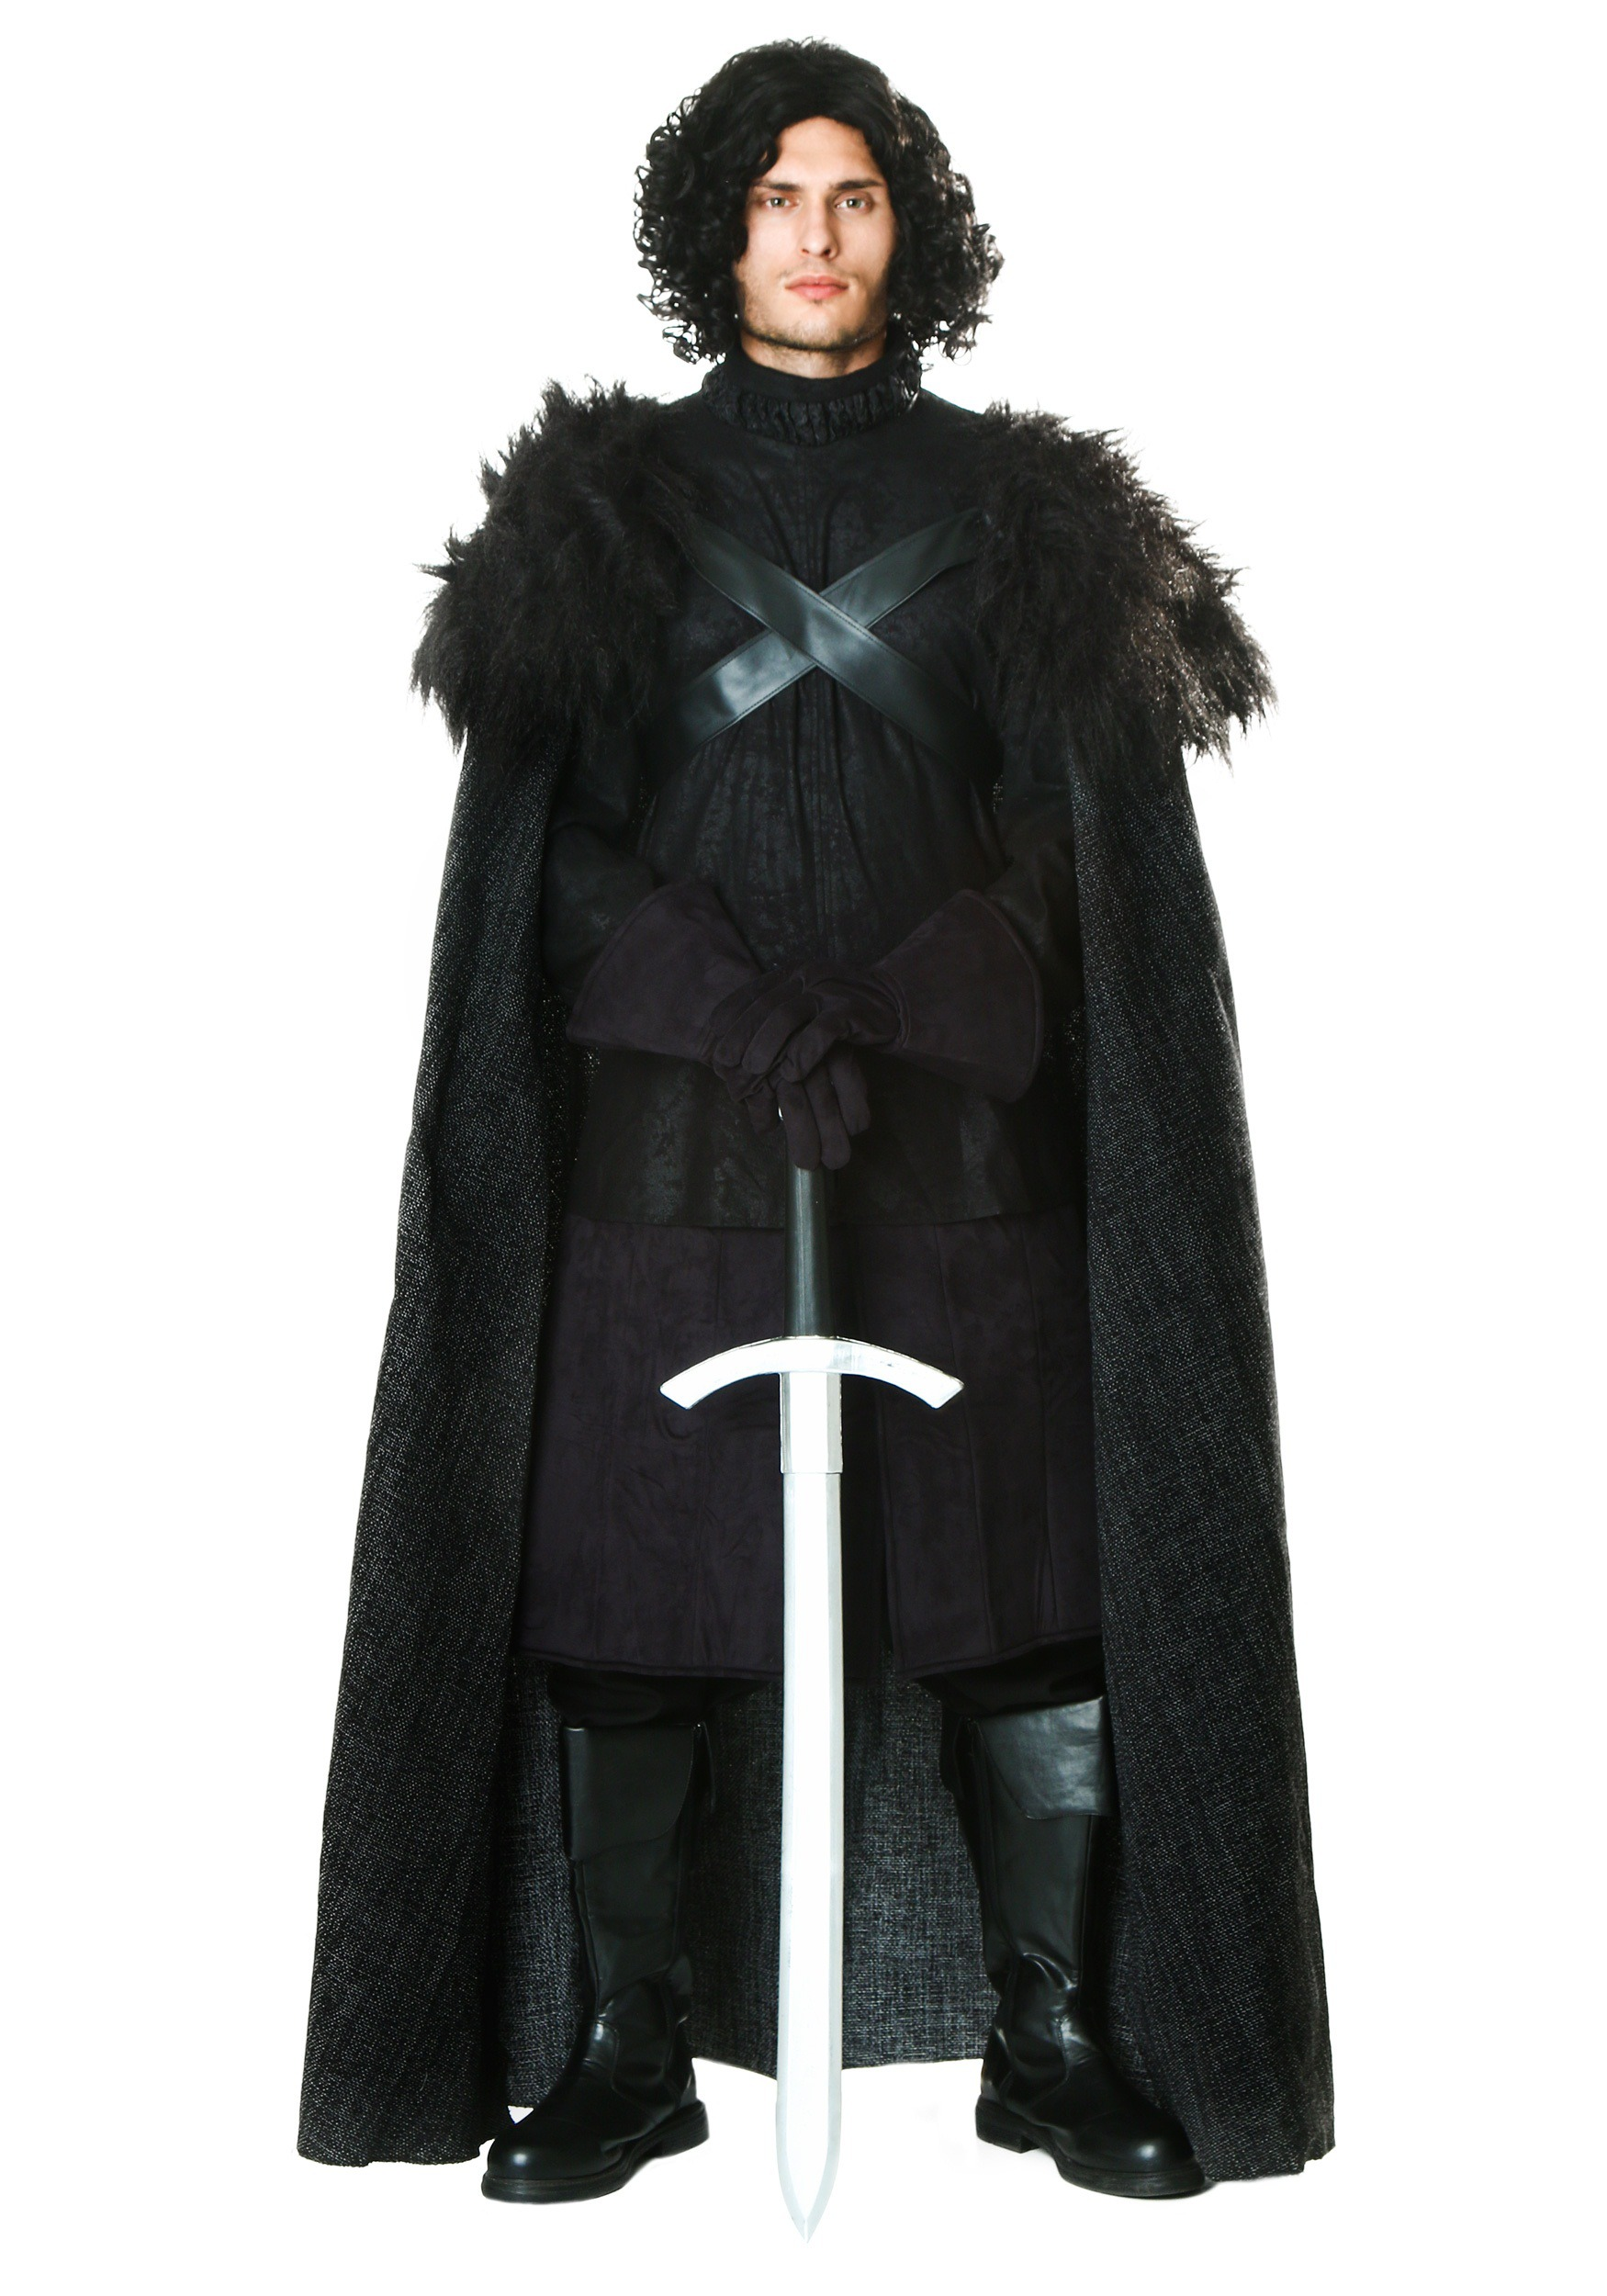 Jon Snow Game of Thrones Costume